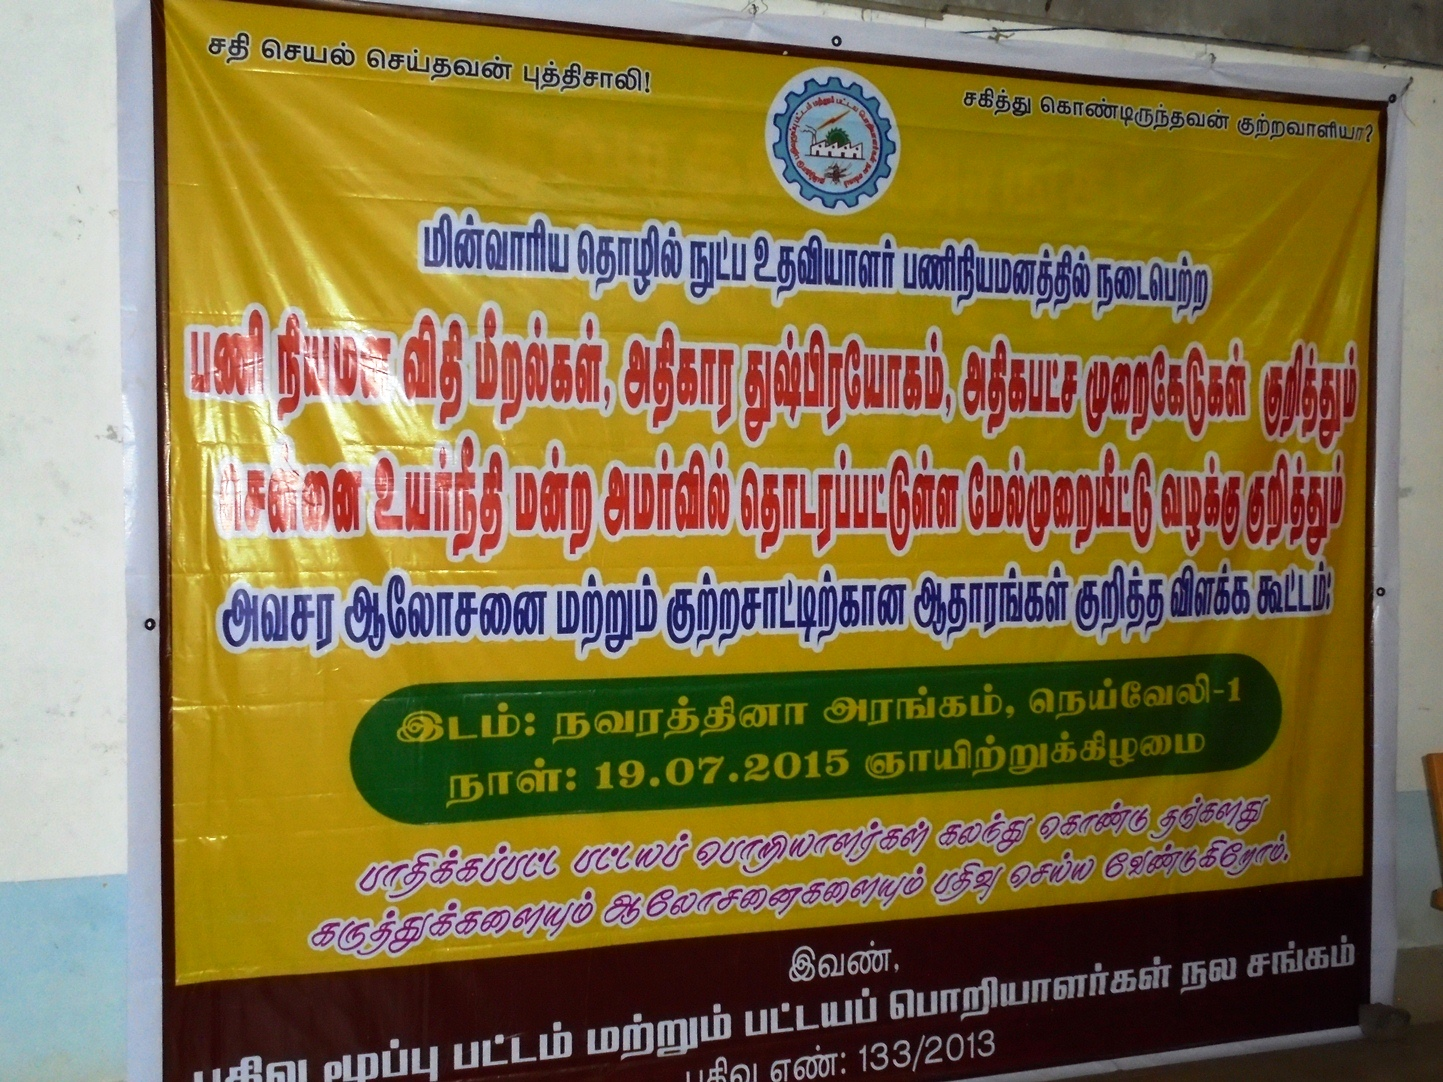 unique guide 2013 gk     Array   meeting in neyveli town ship on 19 07 2015 at nlc navarathana  hall rh